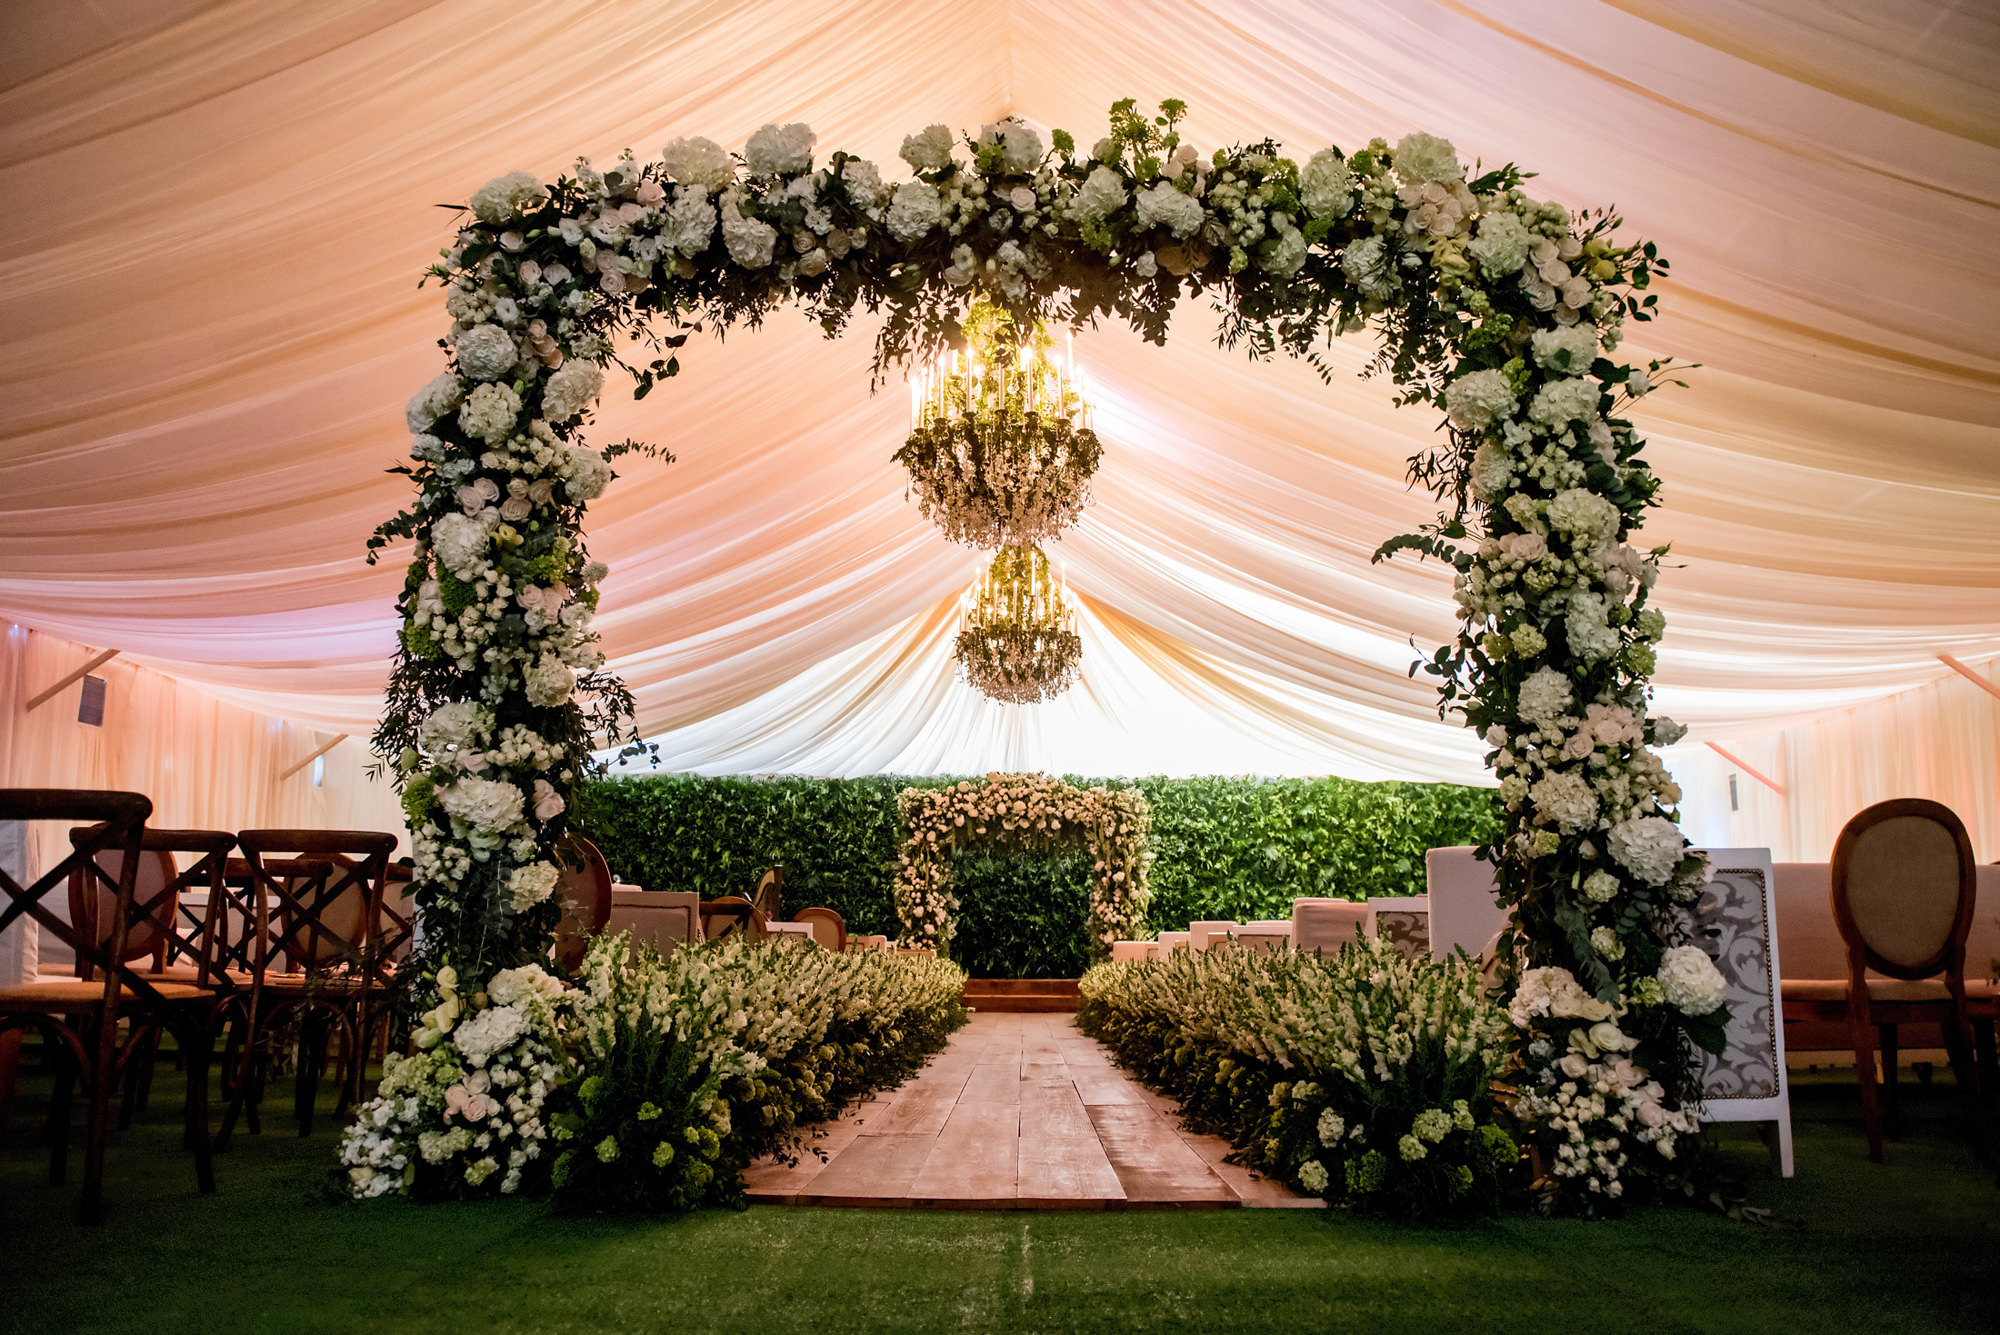 Ceremony decor with beautiful ornate arbors, by Morgan Lynn Razi